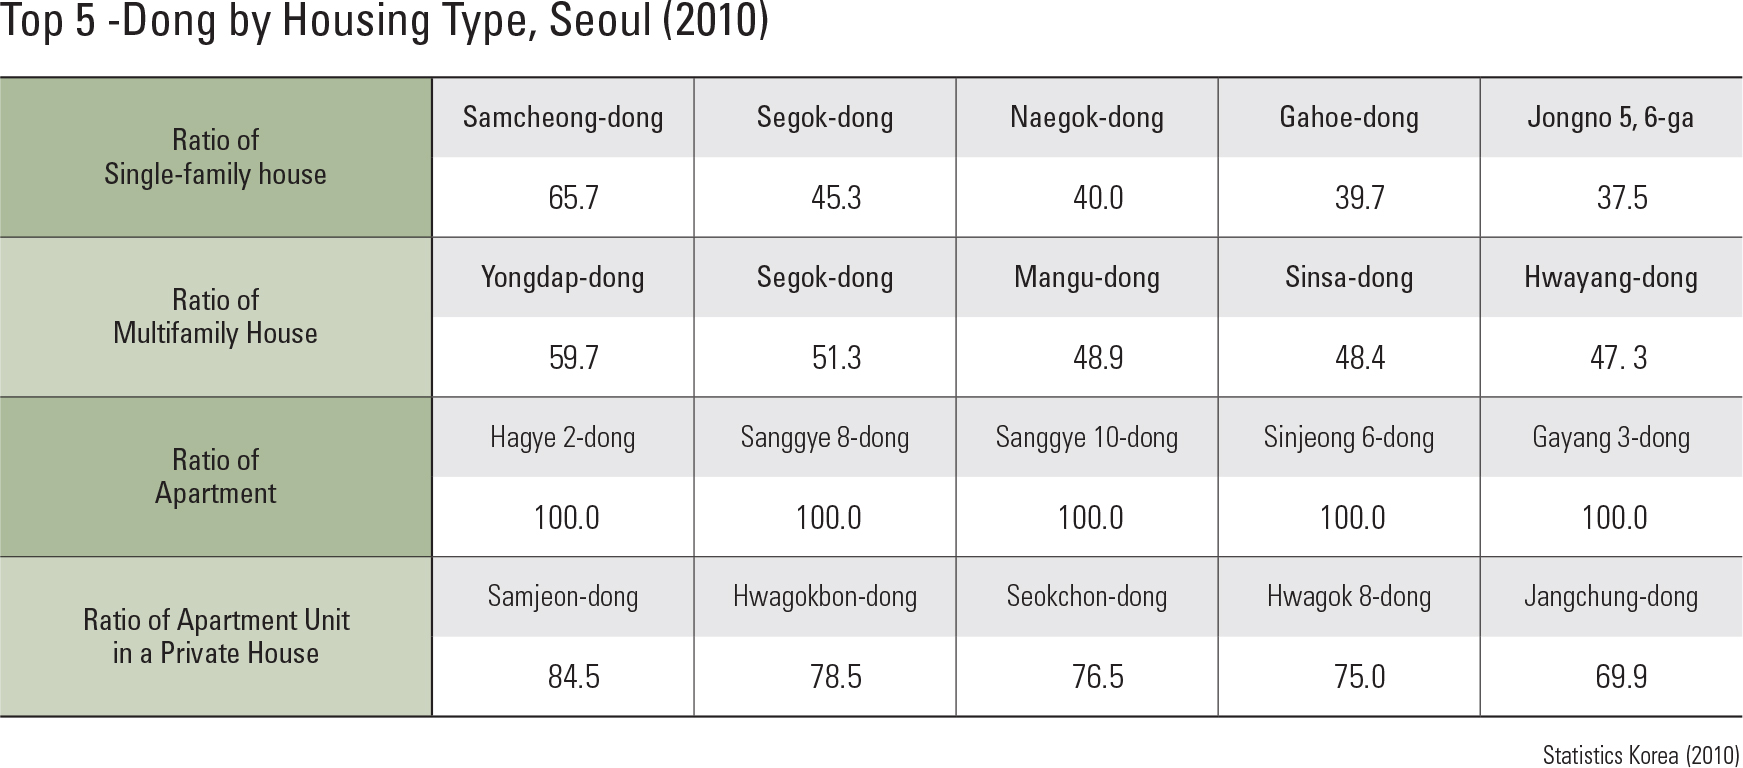 Top 5 -Dong by Housing Type, Seoul (2010)